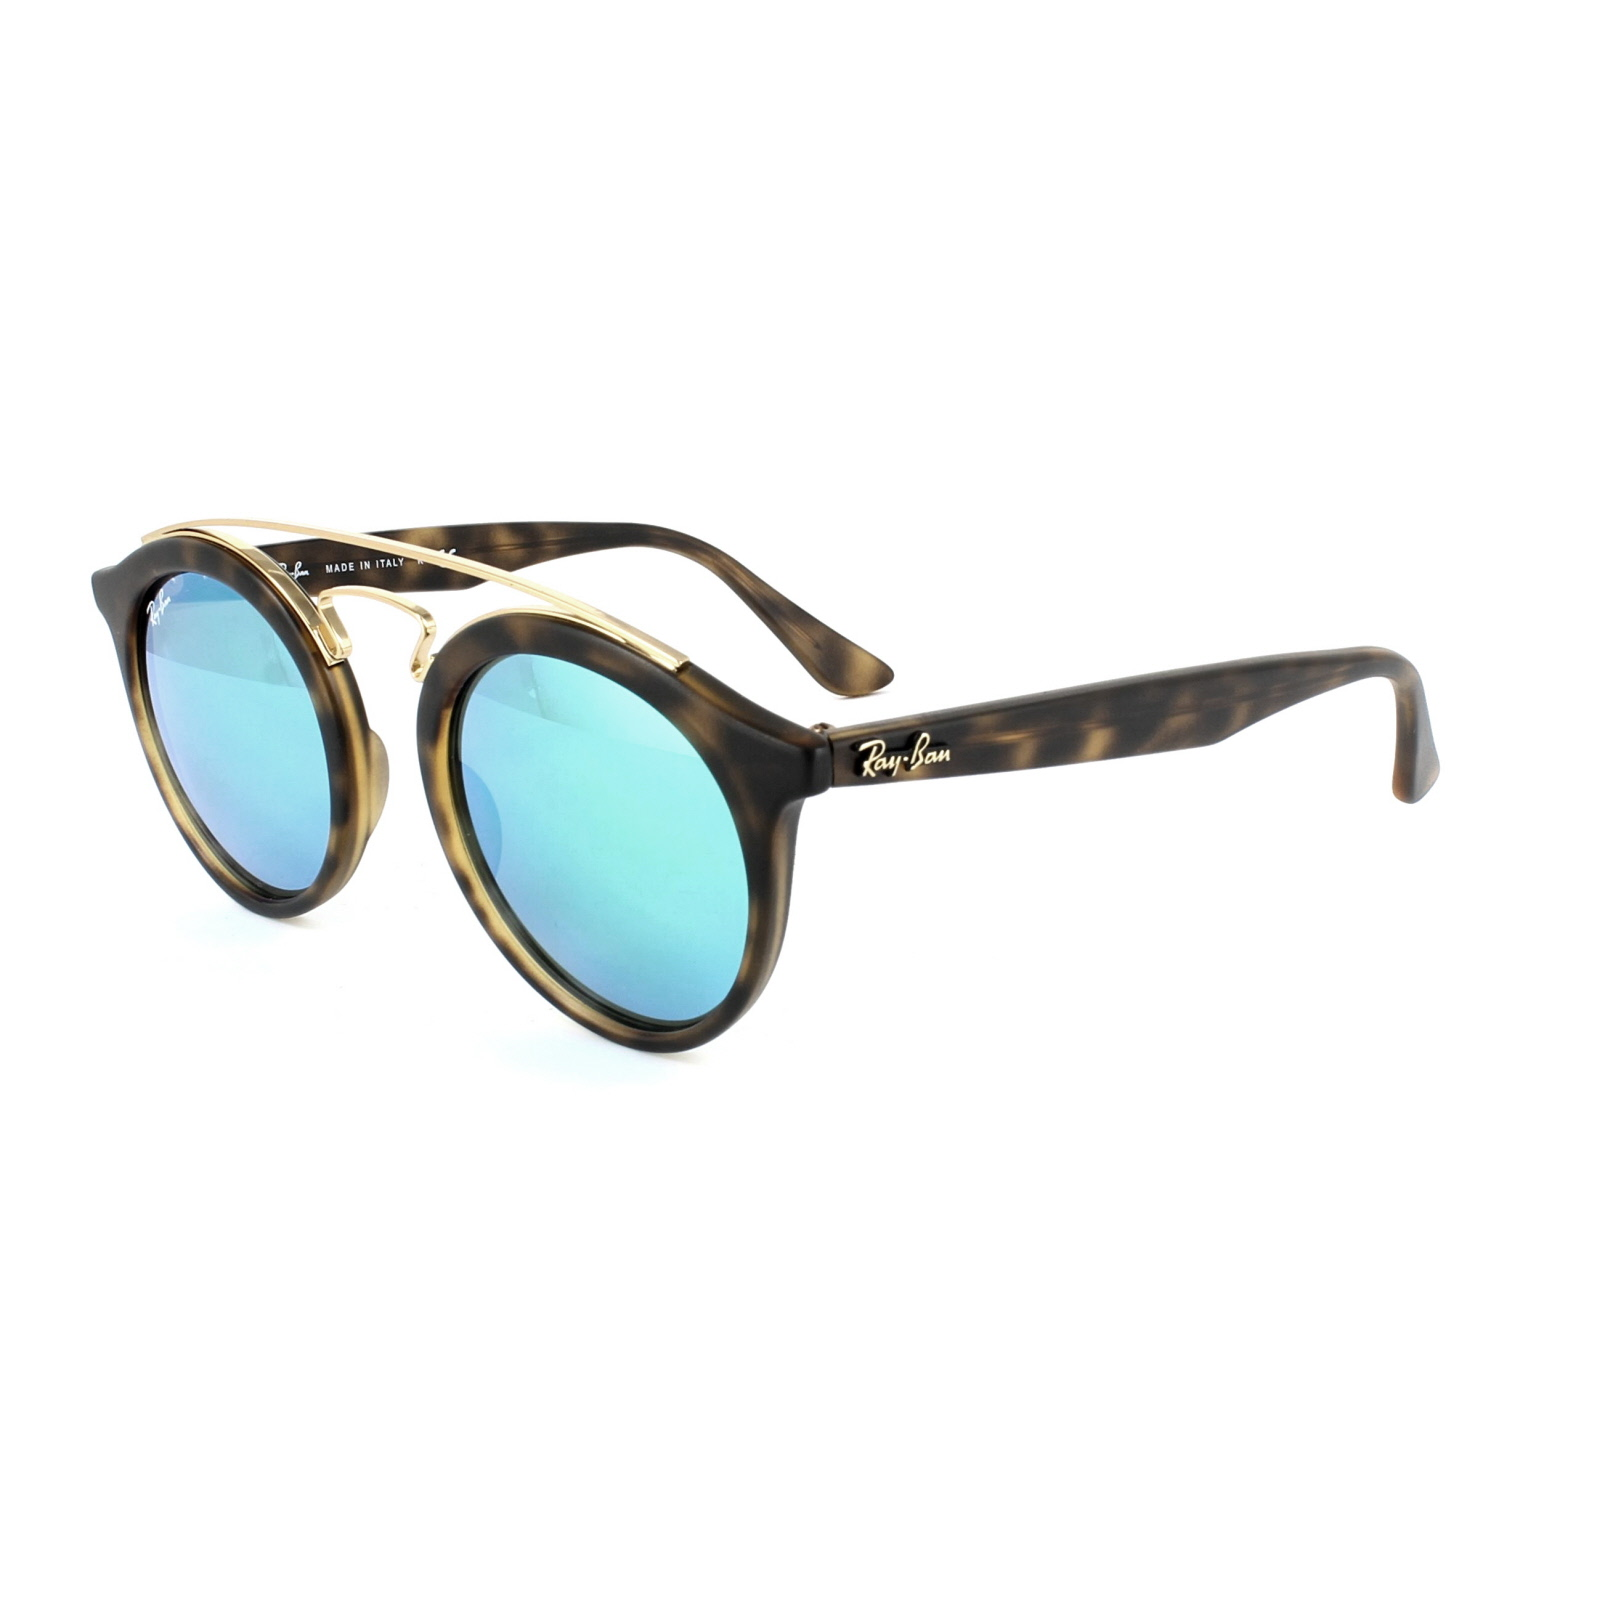 6d5ca923199 Cheap Ray-Ban Gatsby 4256 Sunglasses - Discounted Sunglasses